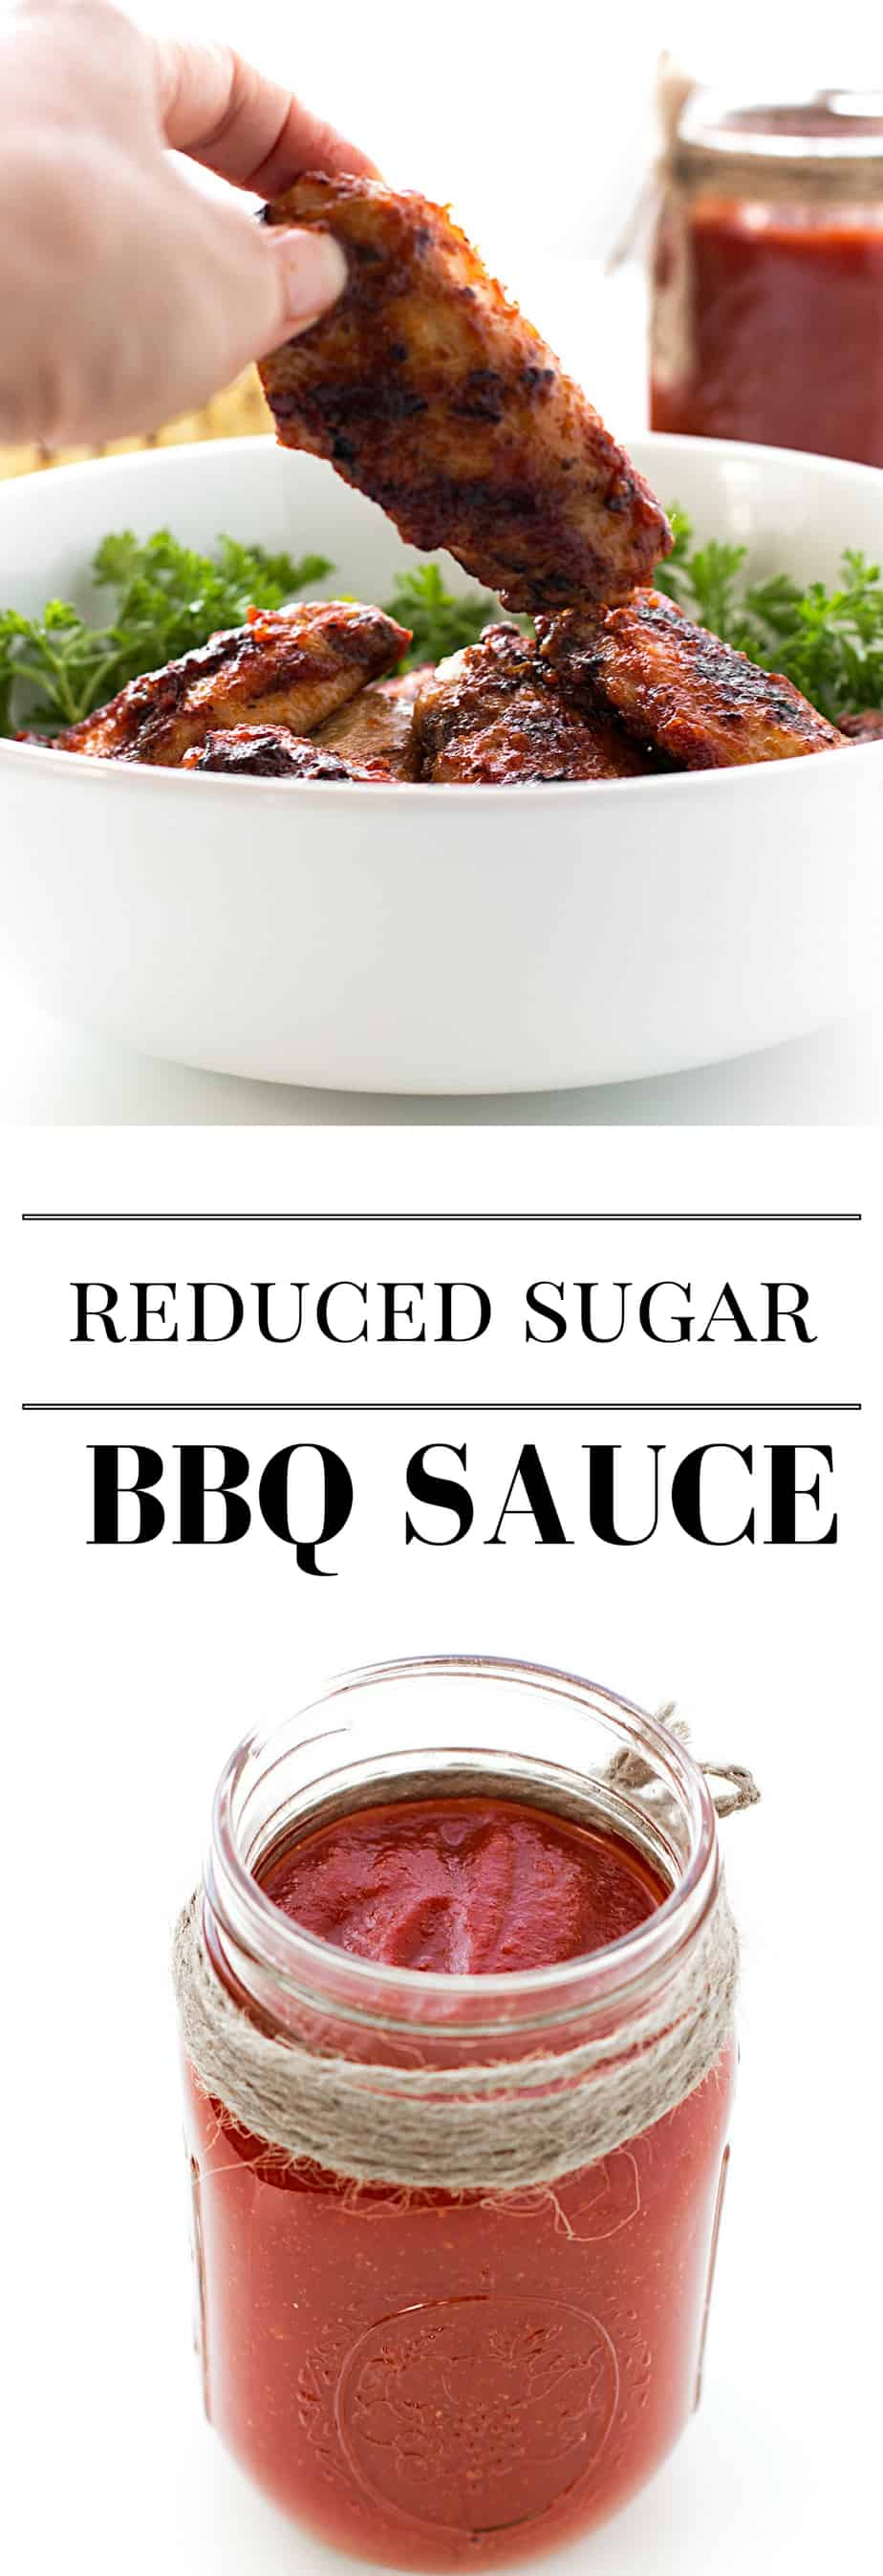 homemade reduced sugar bbq sauce. This bbq sauce recipe is perfect for labor day. Sweet and Tangy sauce, perfect for chicken wings or meats. #SweetSwaps #SplendaSweeties #ad